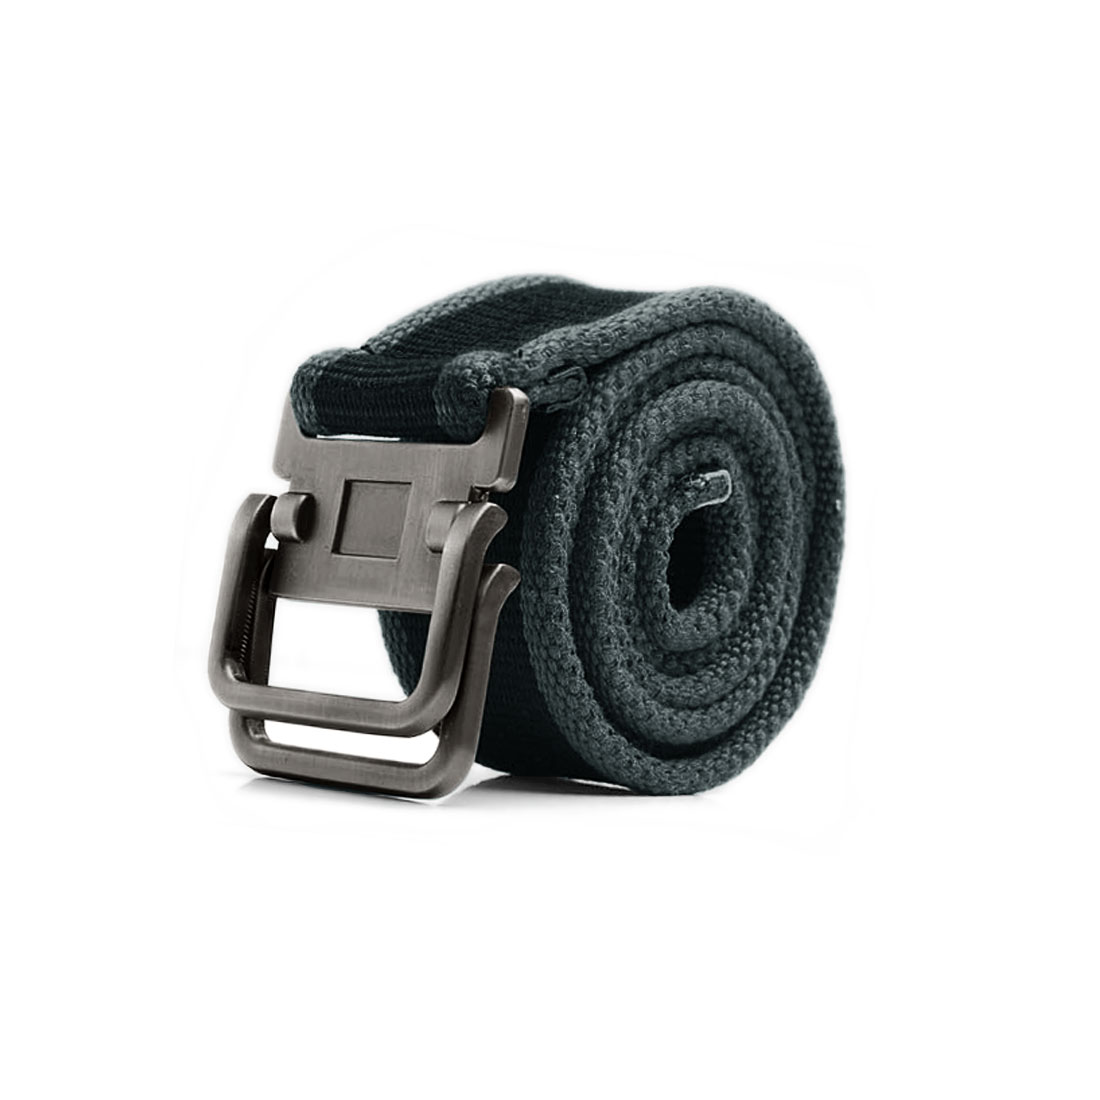 Mens Black Gray New Fashion Forged Alumium Slide Buckle Canvas Webbing Waistbelt